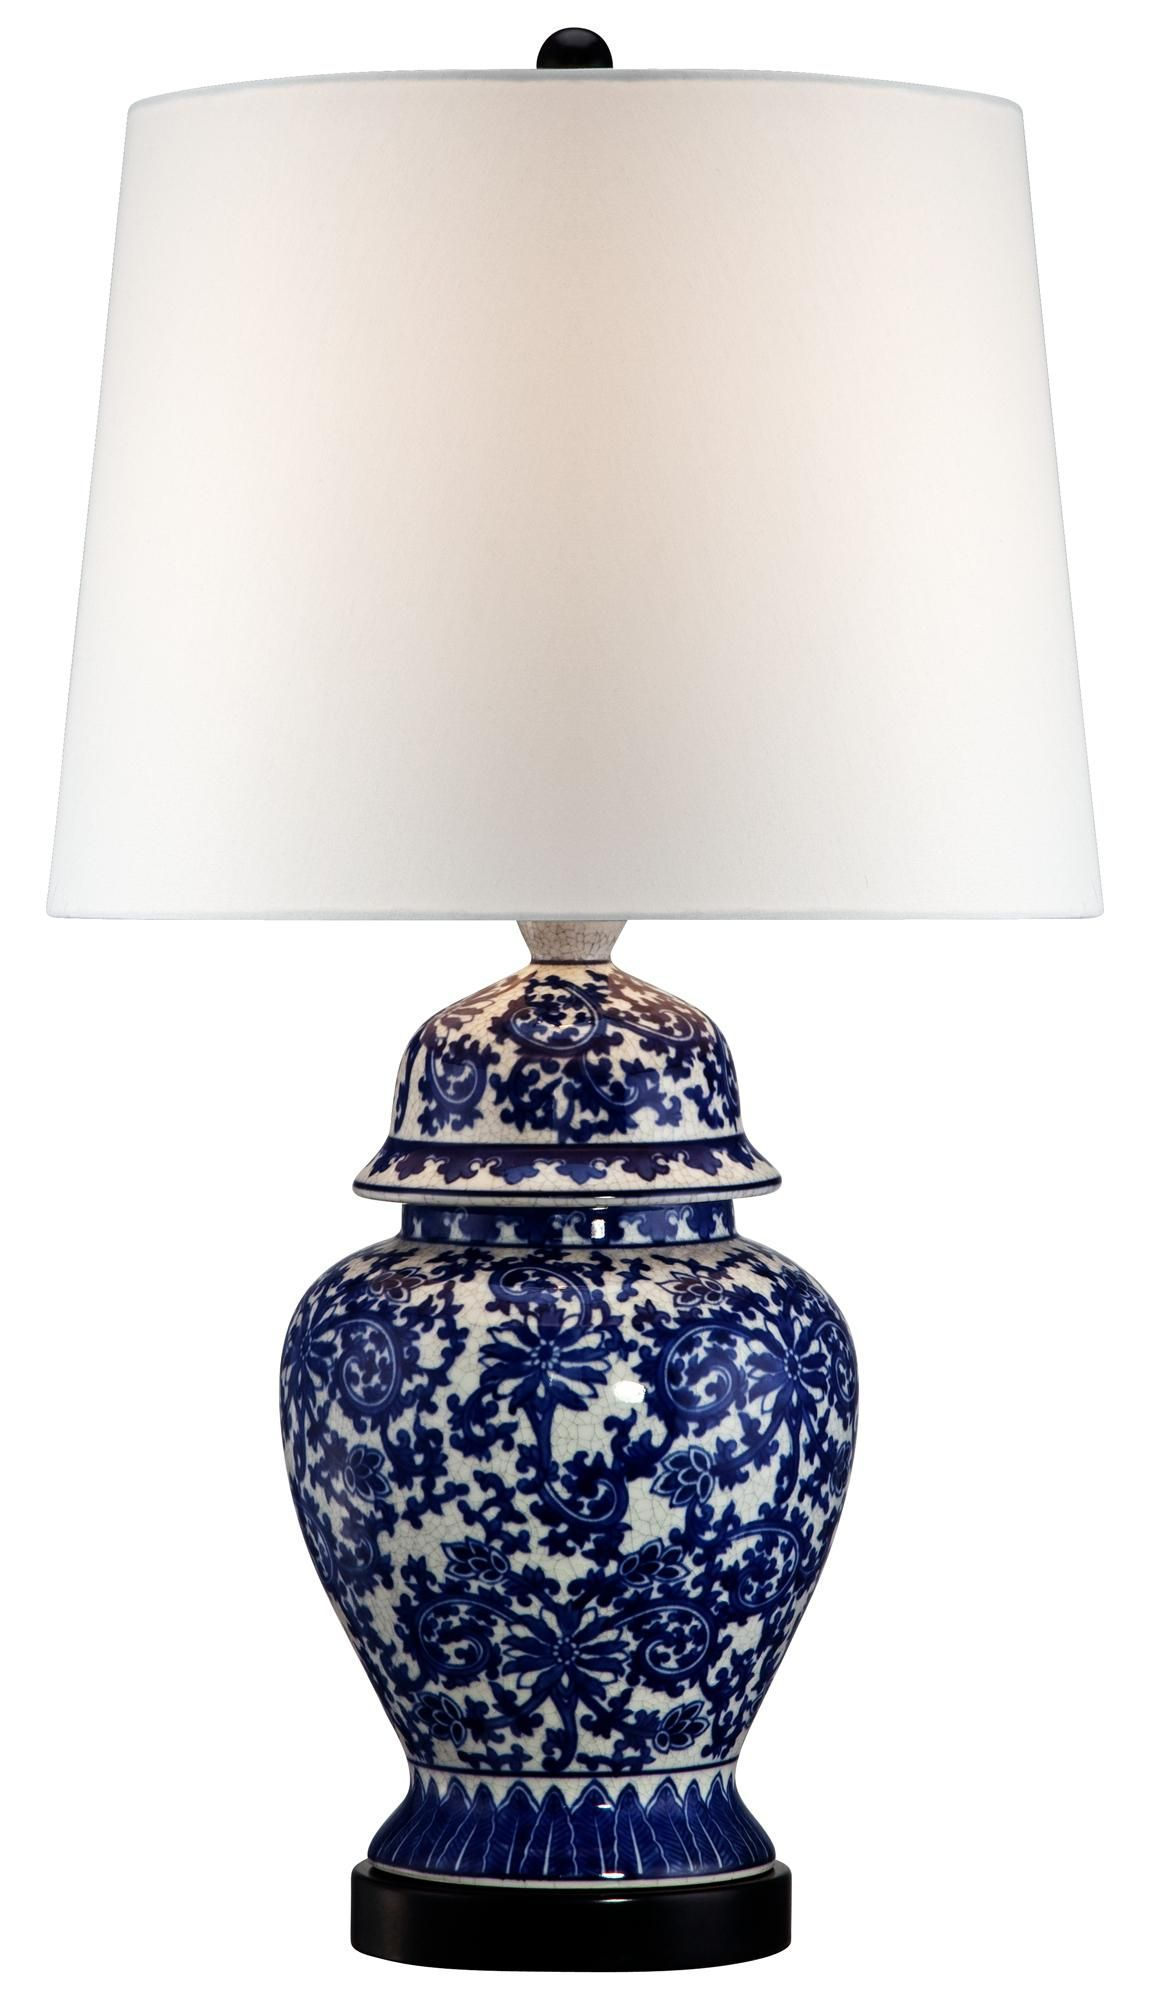 Blue floor lamp  Blue and White Porcelain Temple Jar Table Lamp  Bedroom Floor Lamps